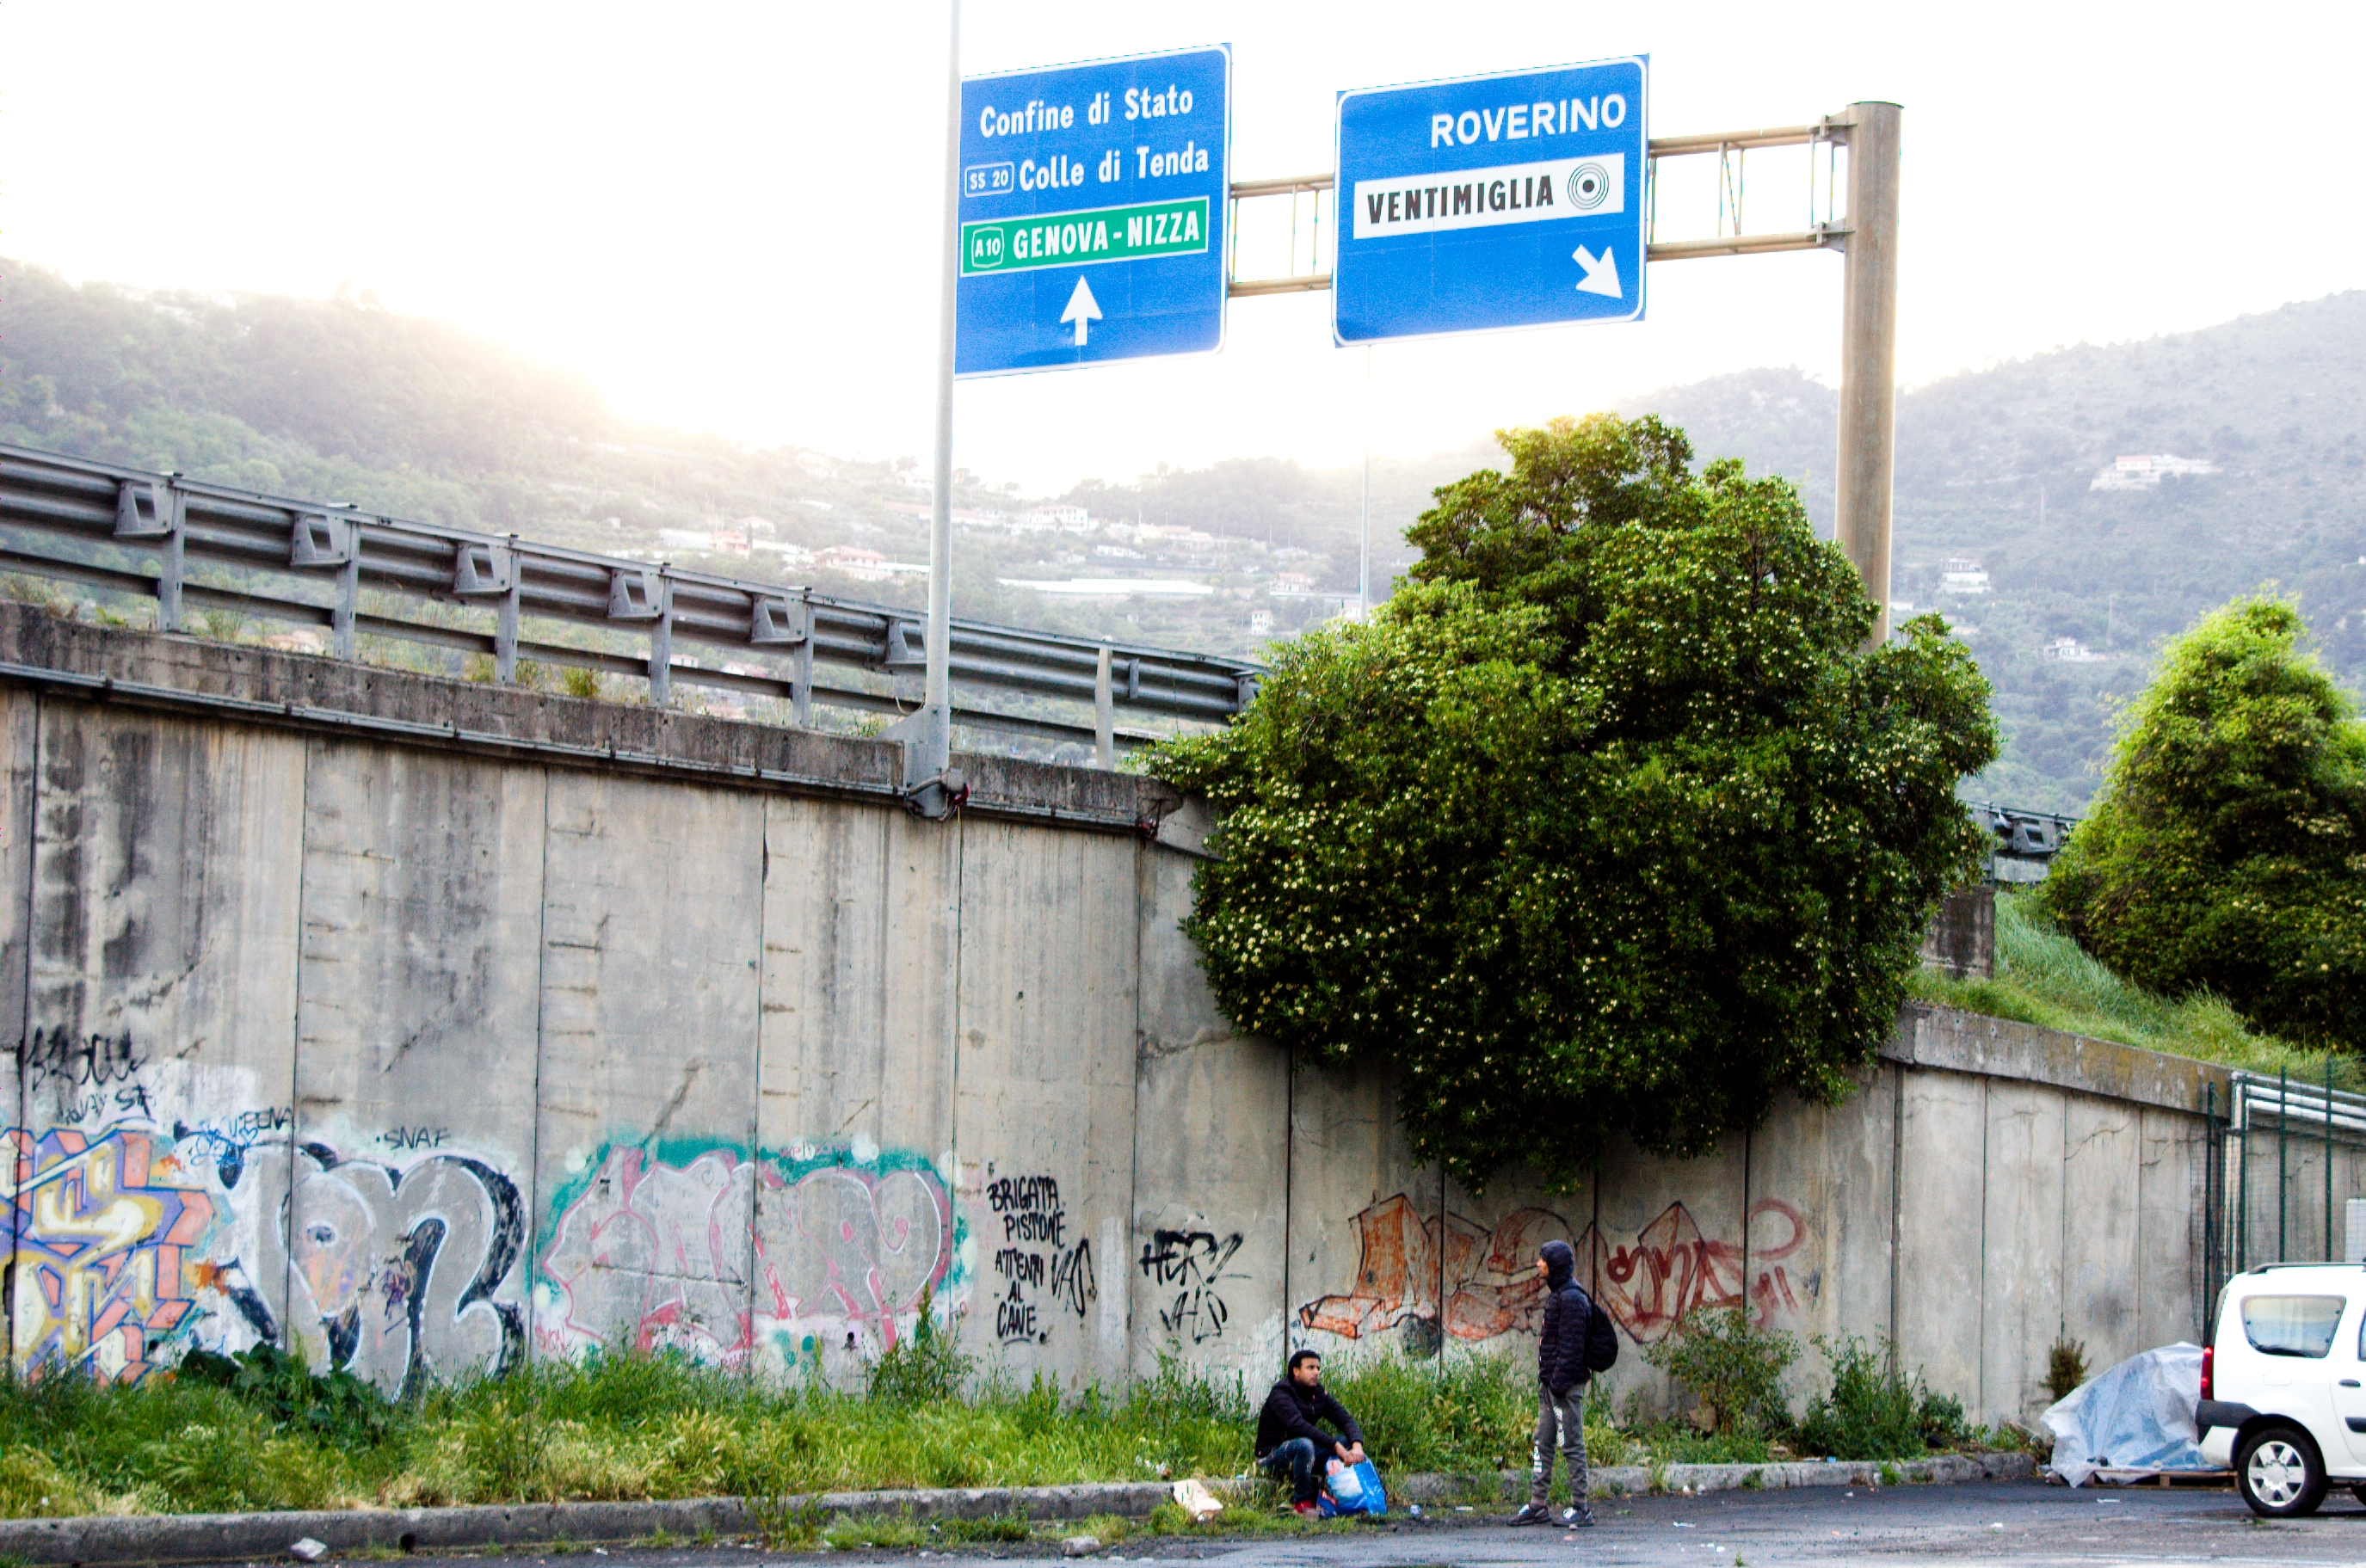 A wall on the side of a freeway is covered in graffiti